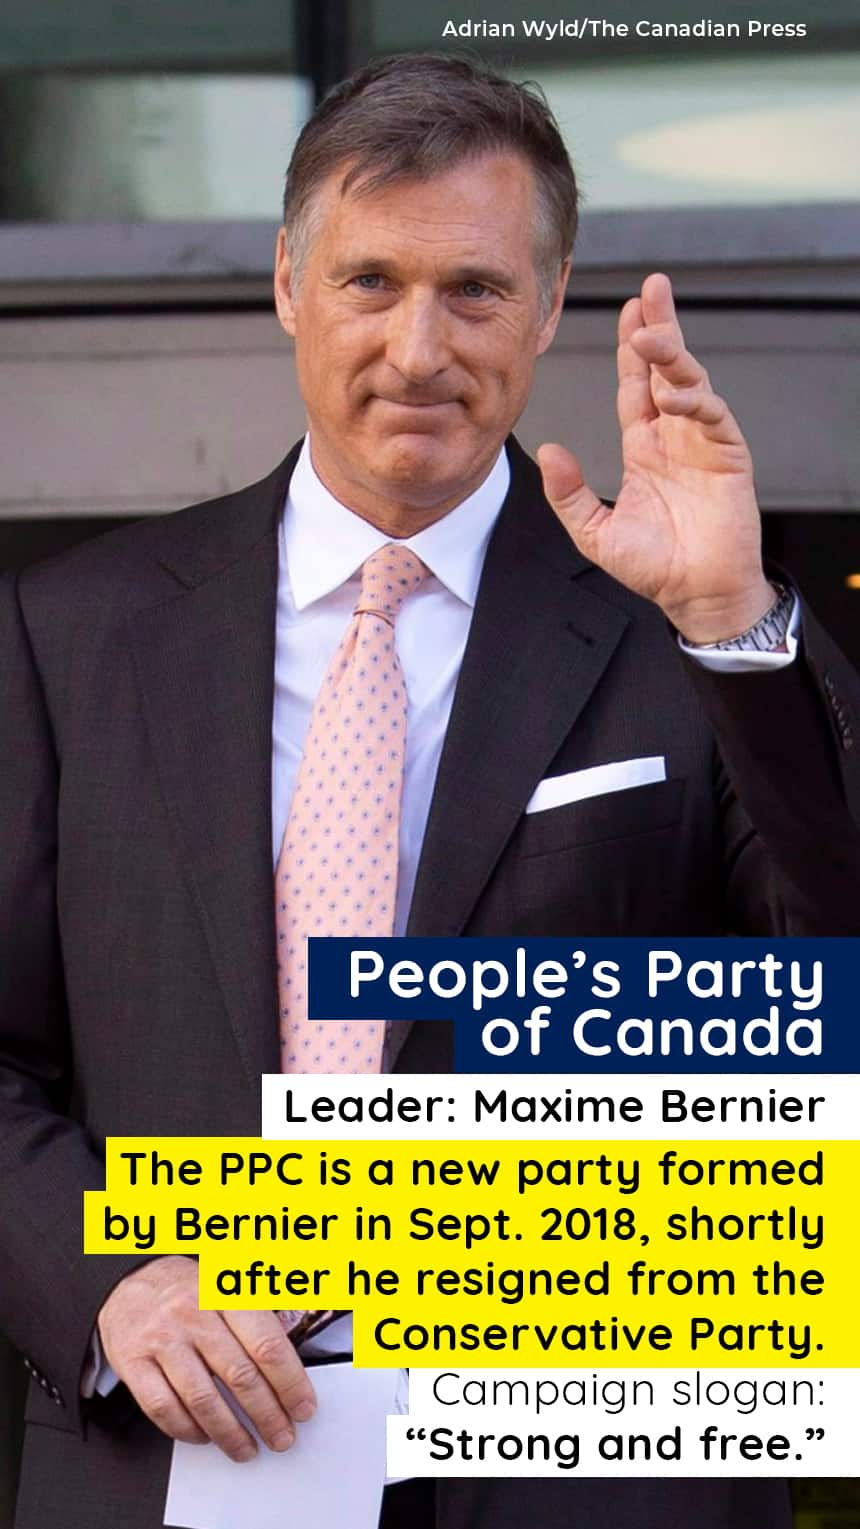 """An image of Maxime Bernier with text that says, People's Party of Canada - Party Leader Maxime Bernier, The PPC is a new party formed by Bernier in Sept. 2018, shortly after he resigned from the Conservative Party. Campaign slogan: """"Strong and free."""""""